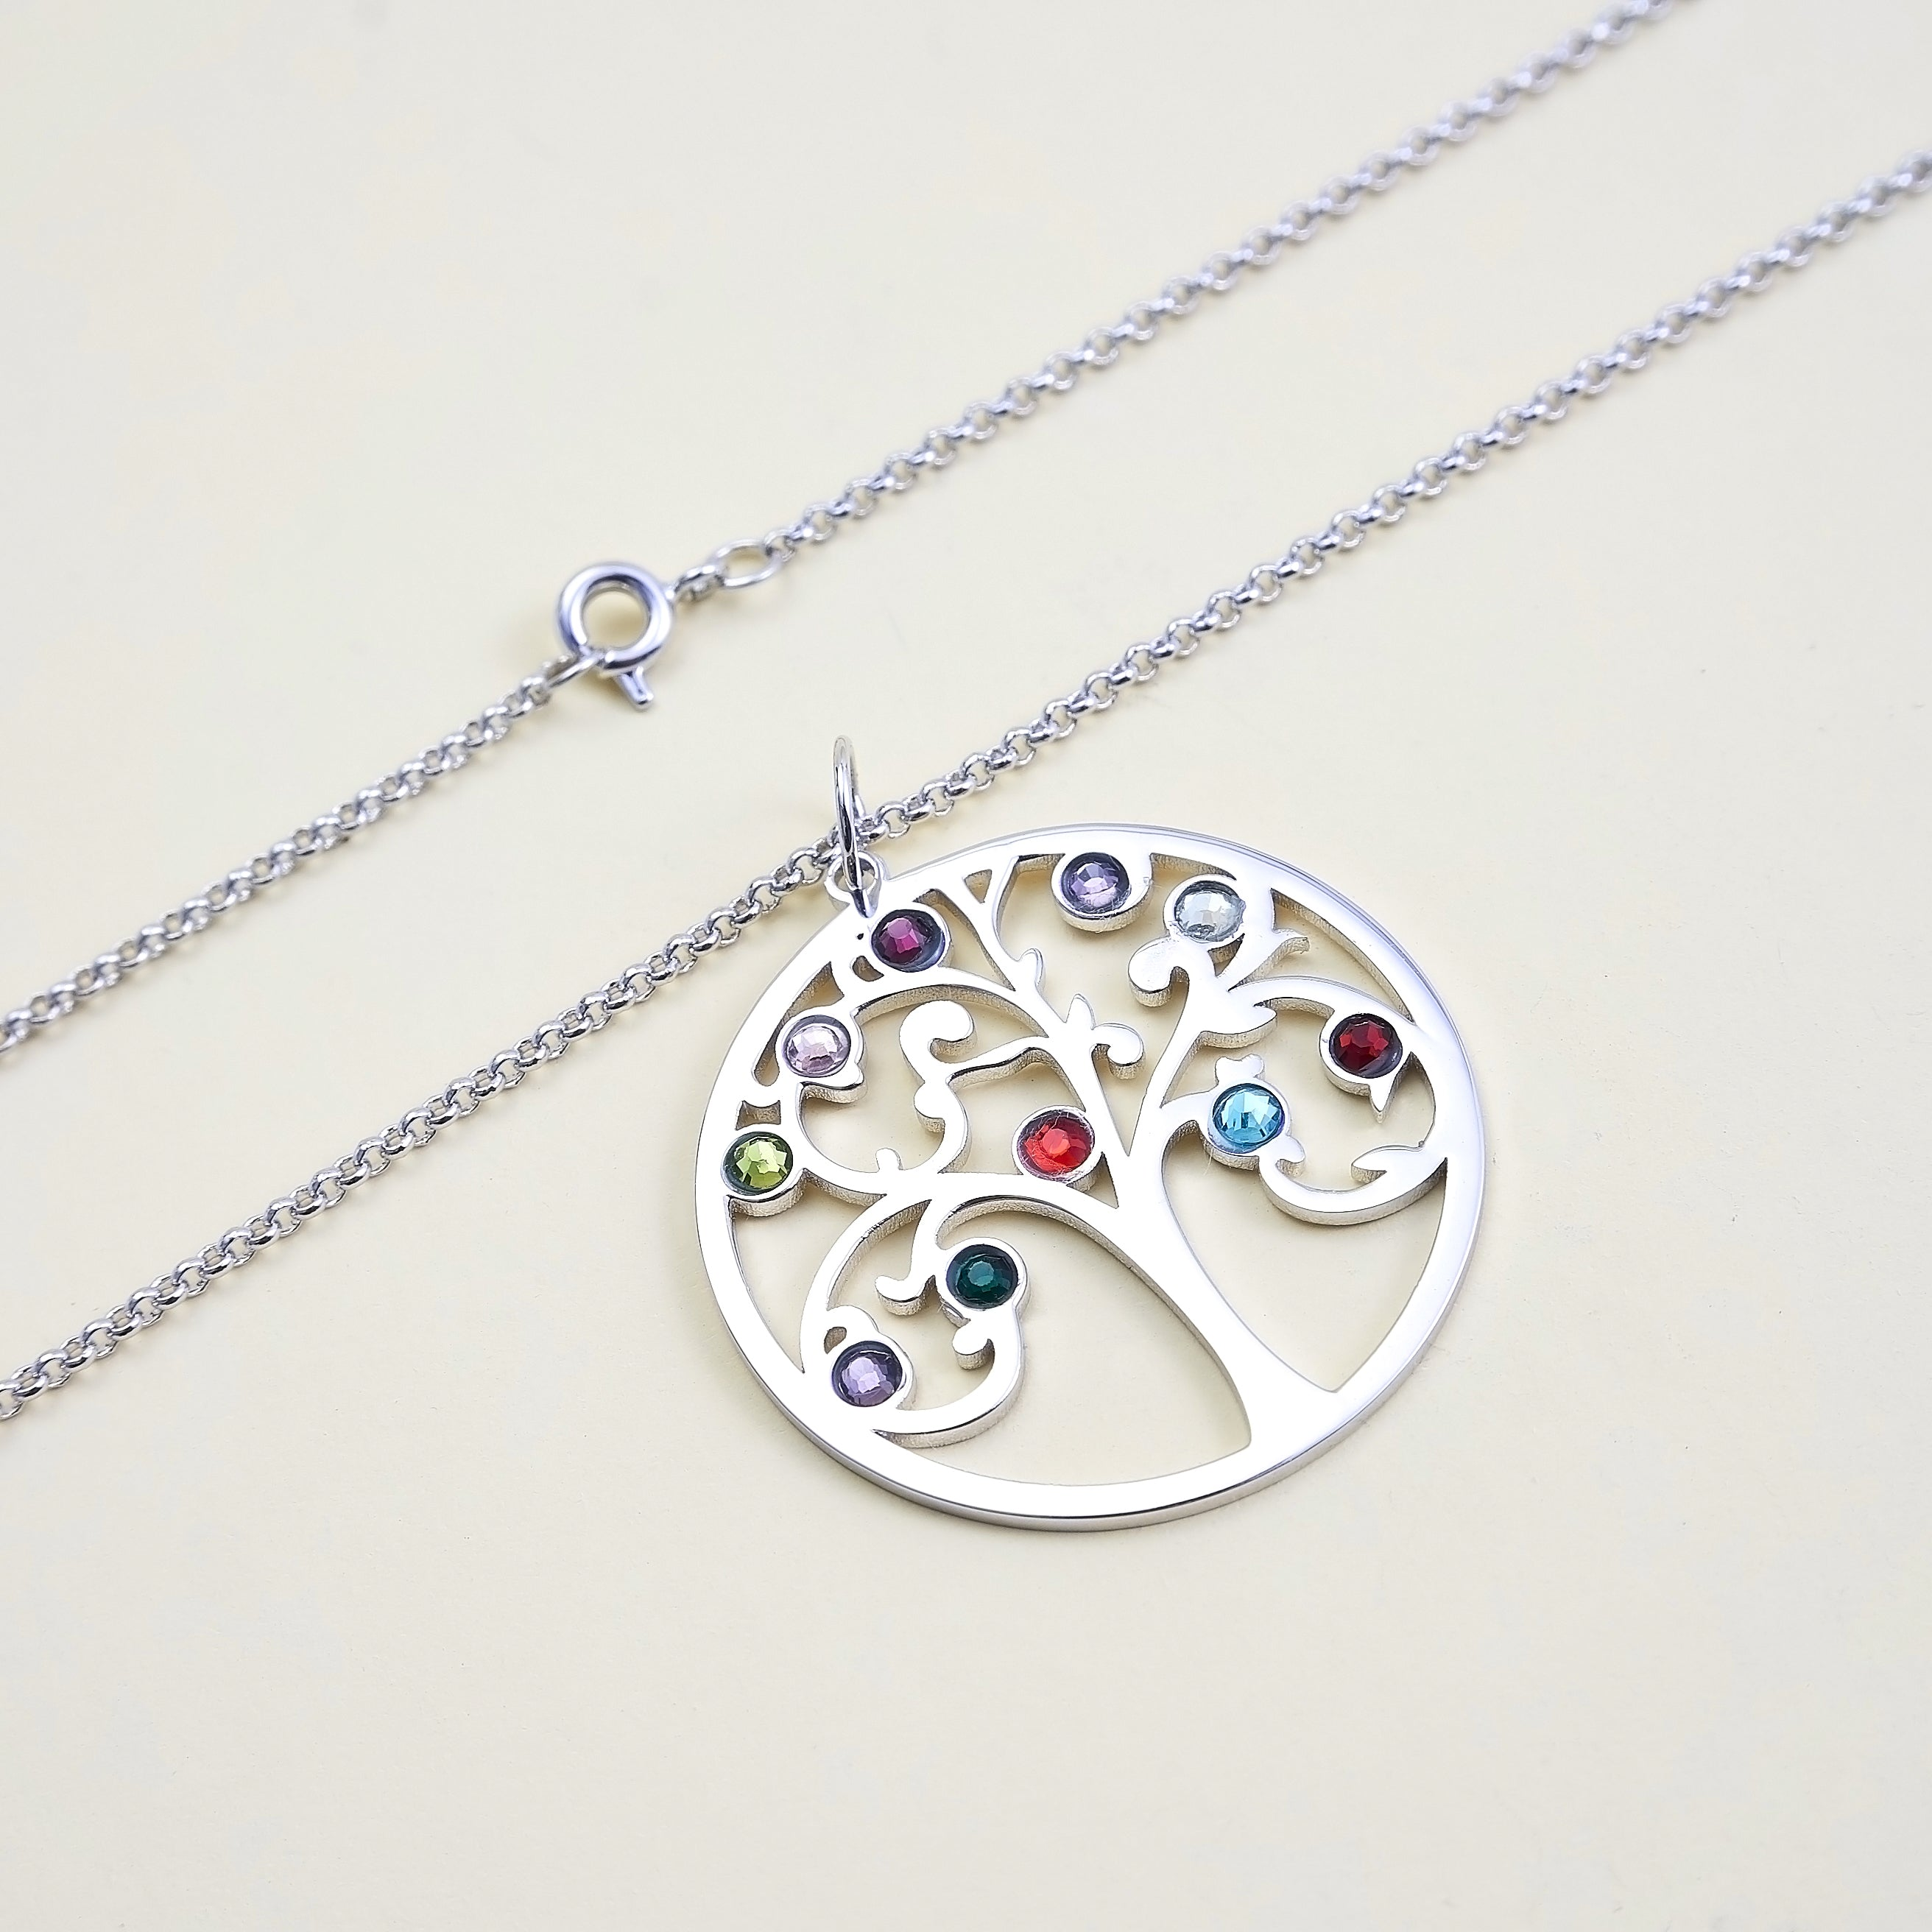 Family Tree Necklace with 10 Birthstone